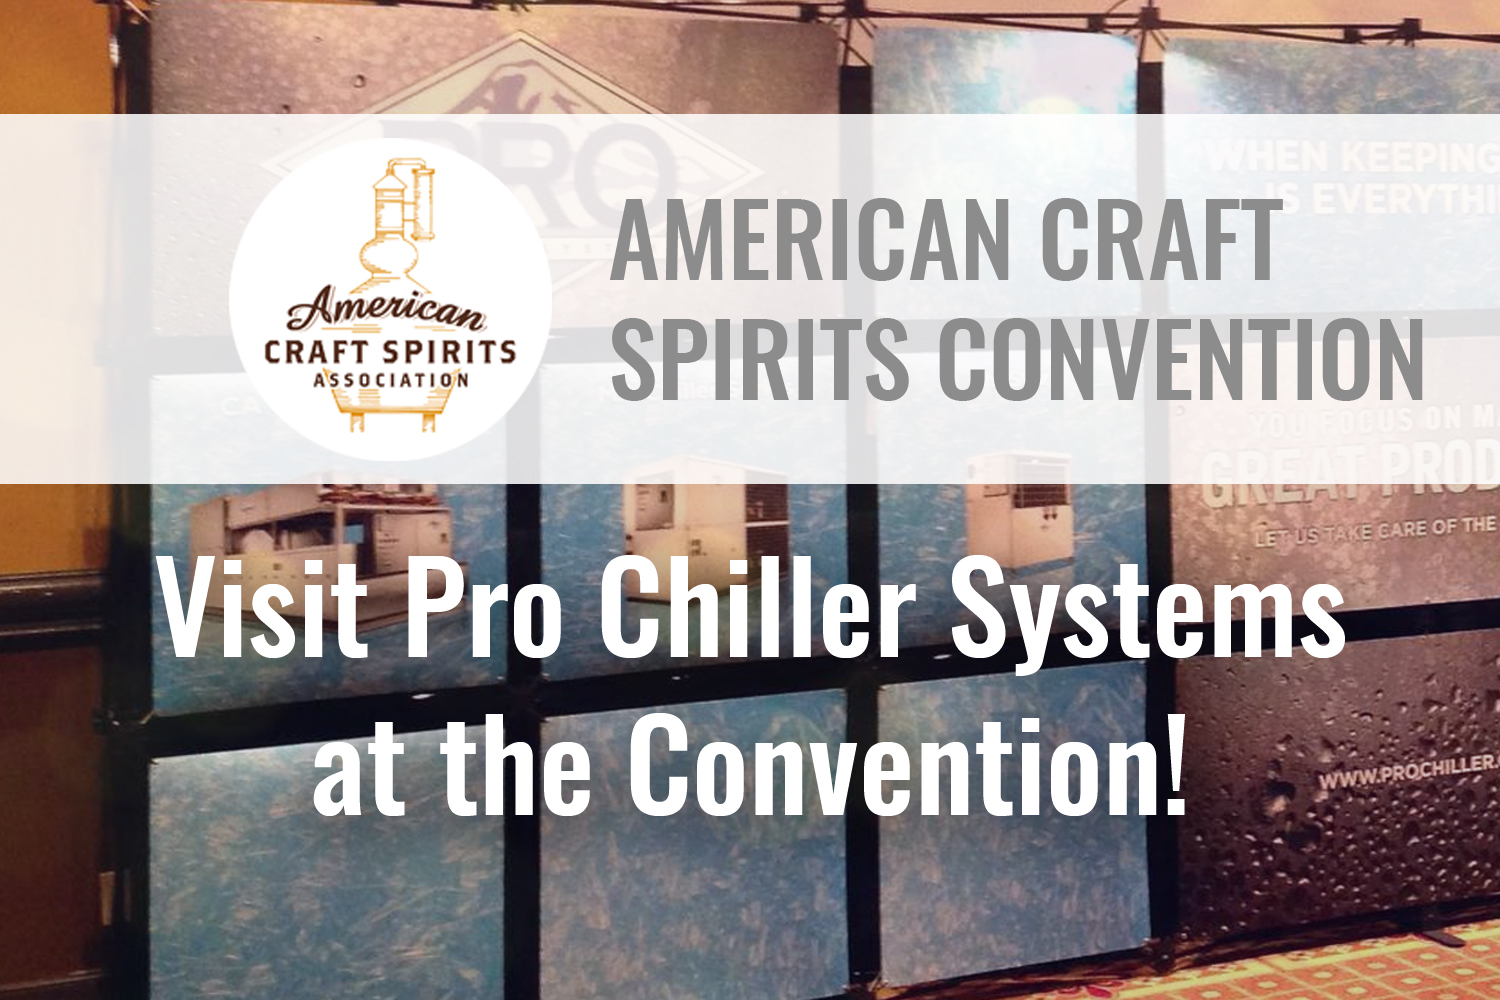 american craft spirits convention